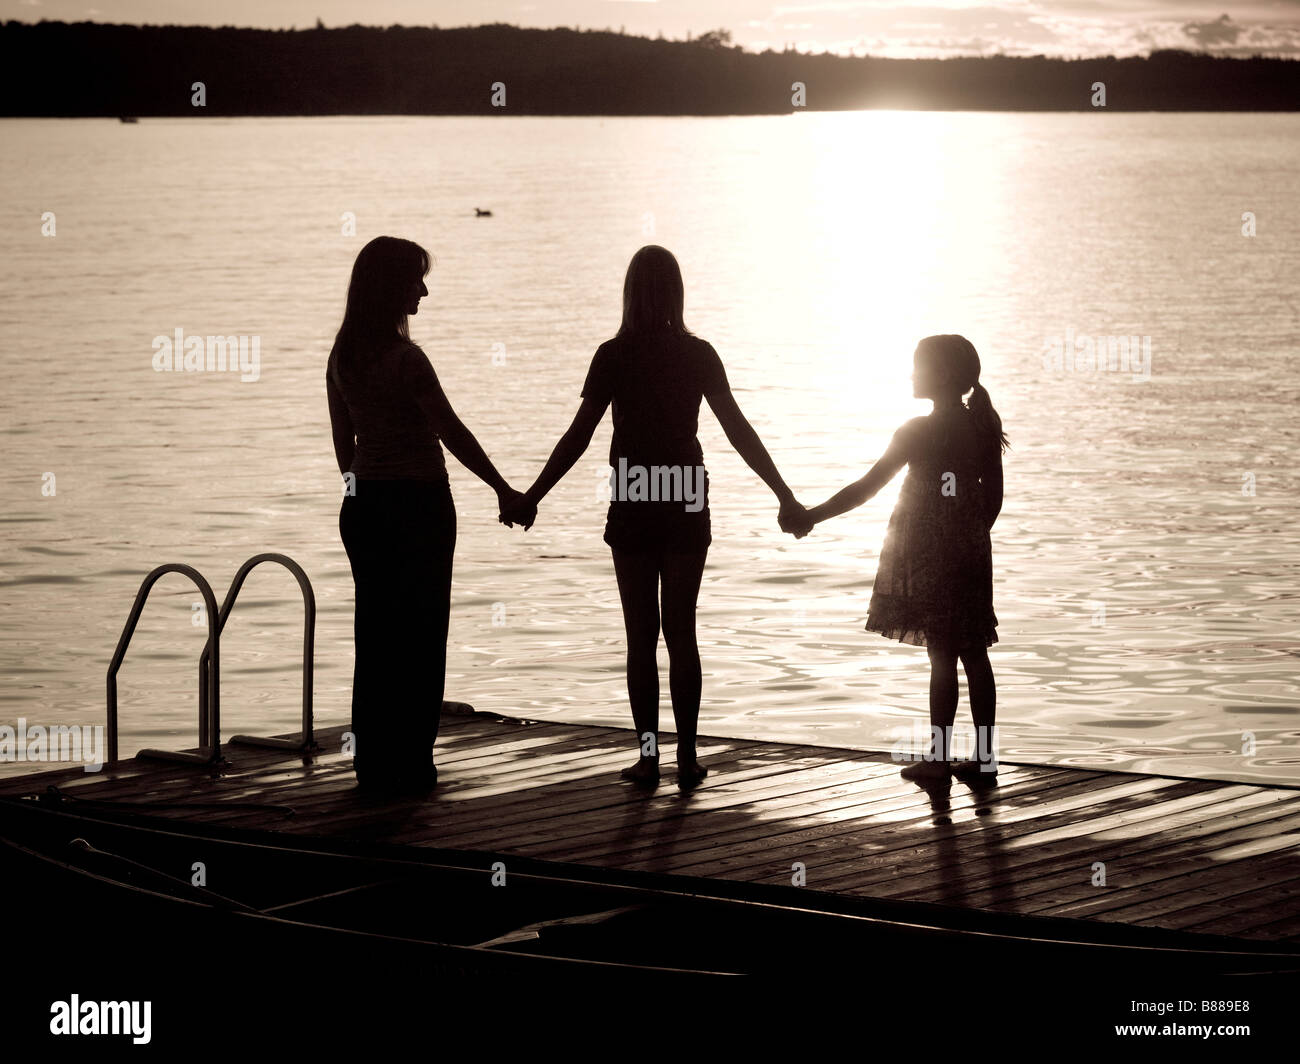 Lake of the Woods, Ontario, Canada; Silhouette of three females on a dock - Stock Image